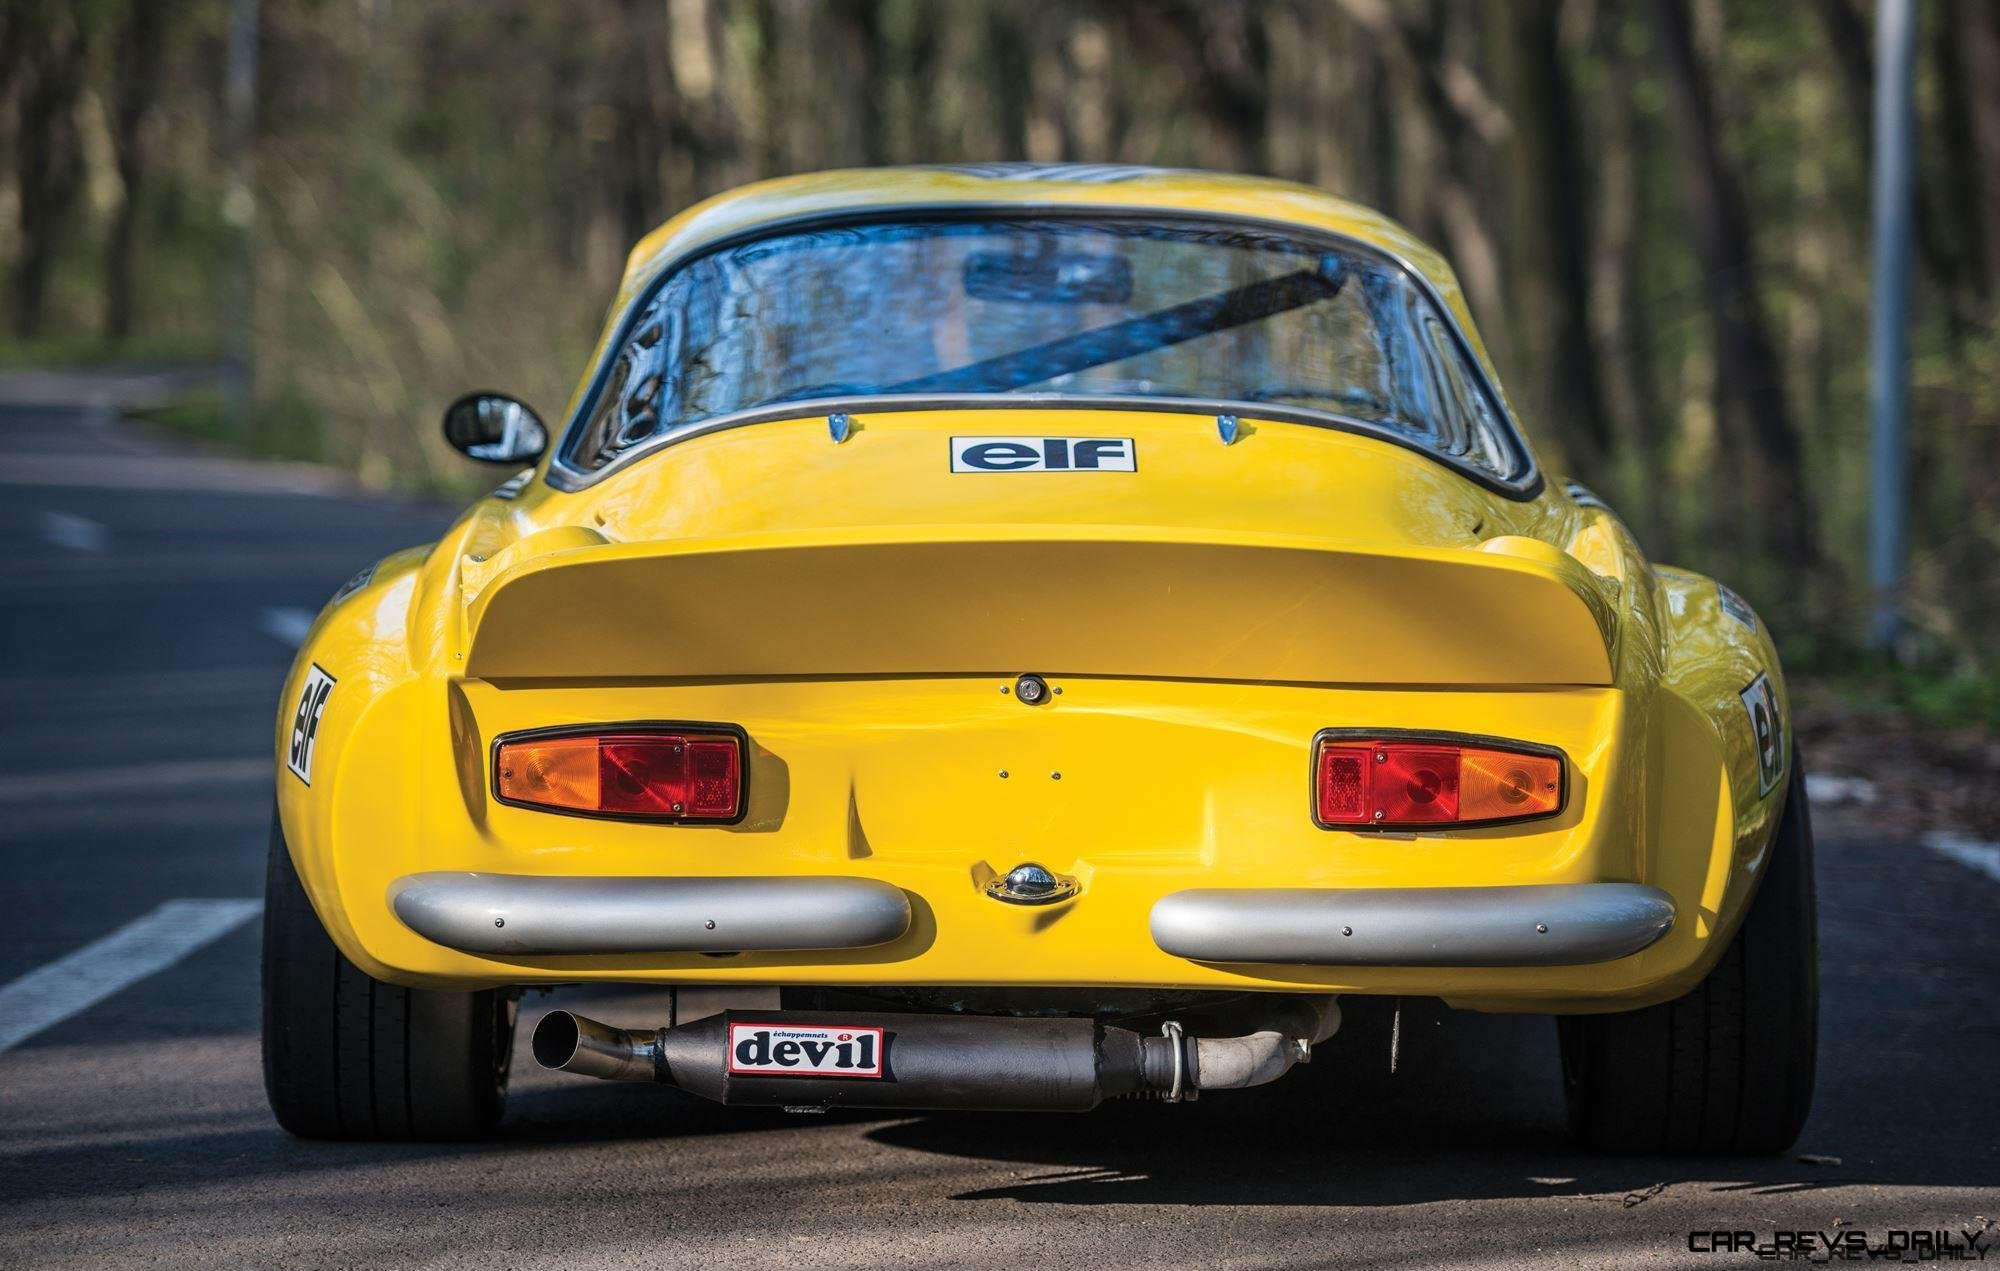 RM Monaco 2016 – 1965 Alpine-Renault A110 in Group 4 Rally Spec